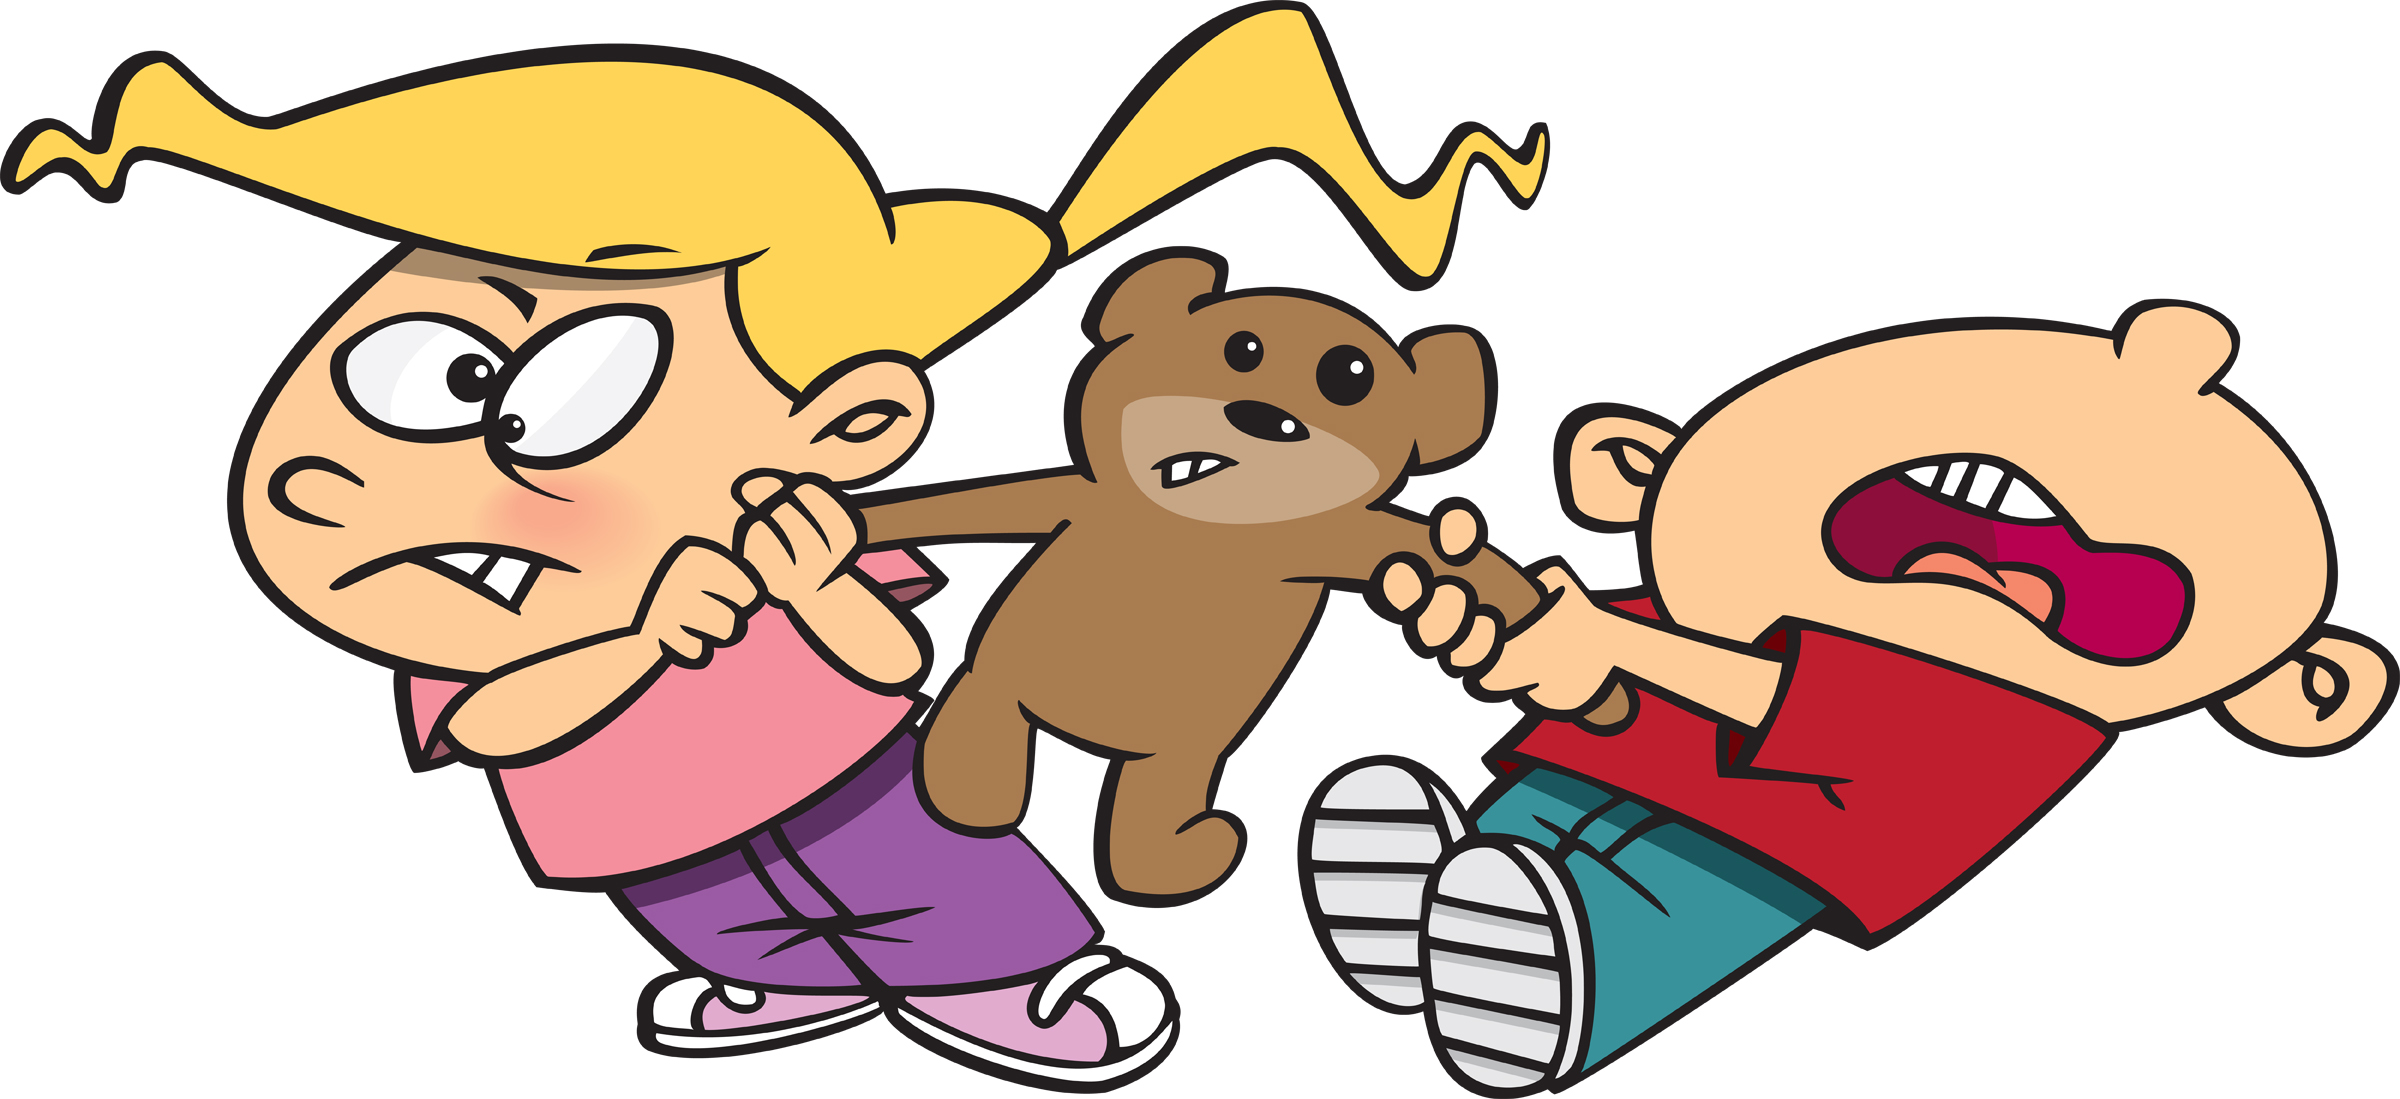 Share toys clipart banner download Free No Fighting Cliparts, Download Free Clip Art, Free Clip Art on ... banner download